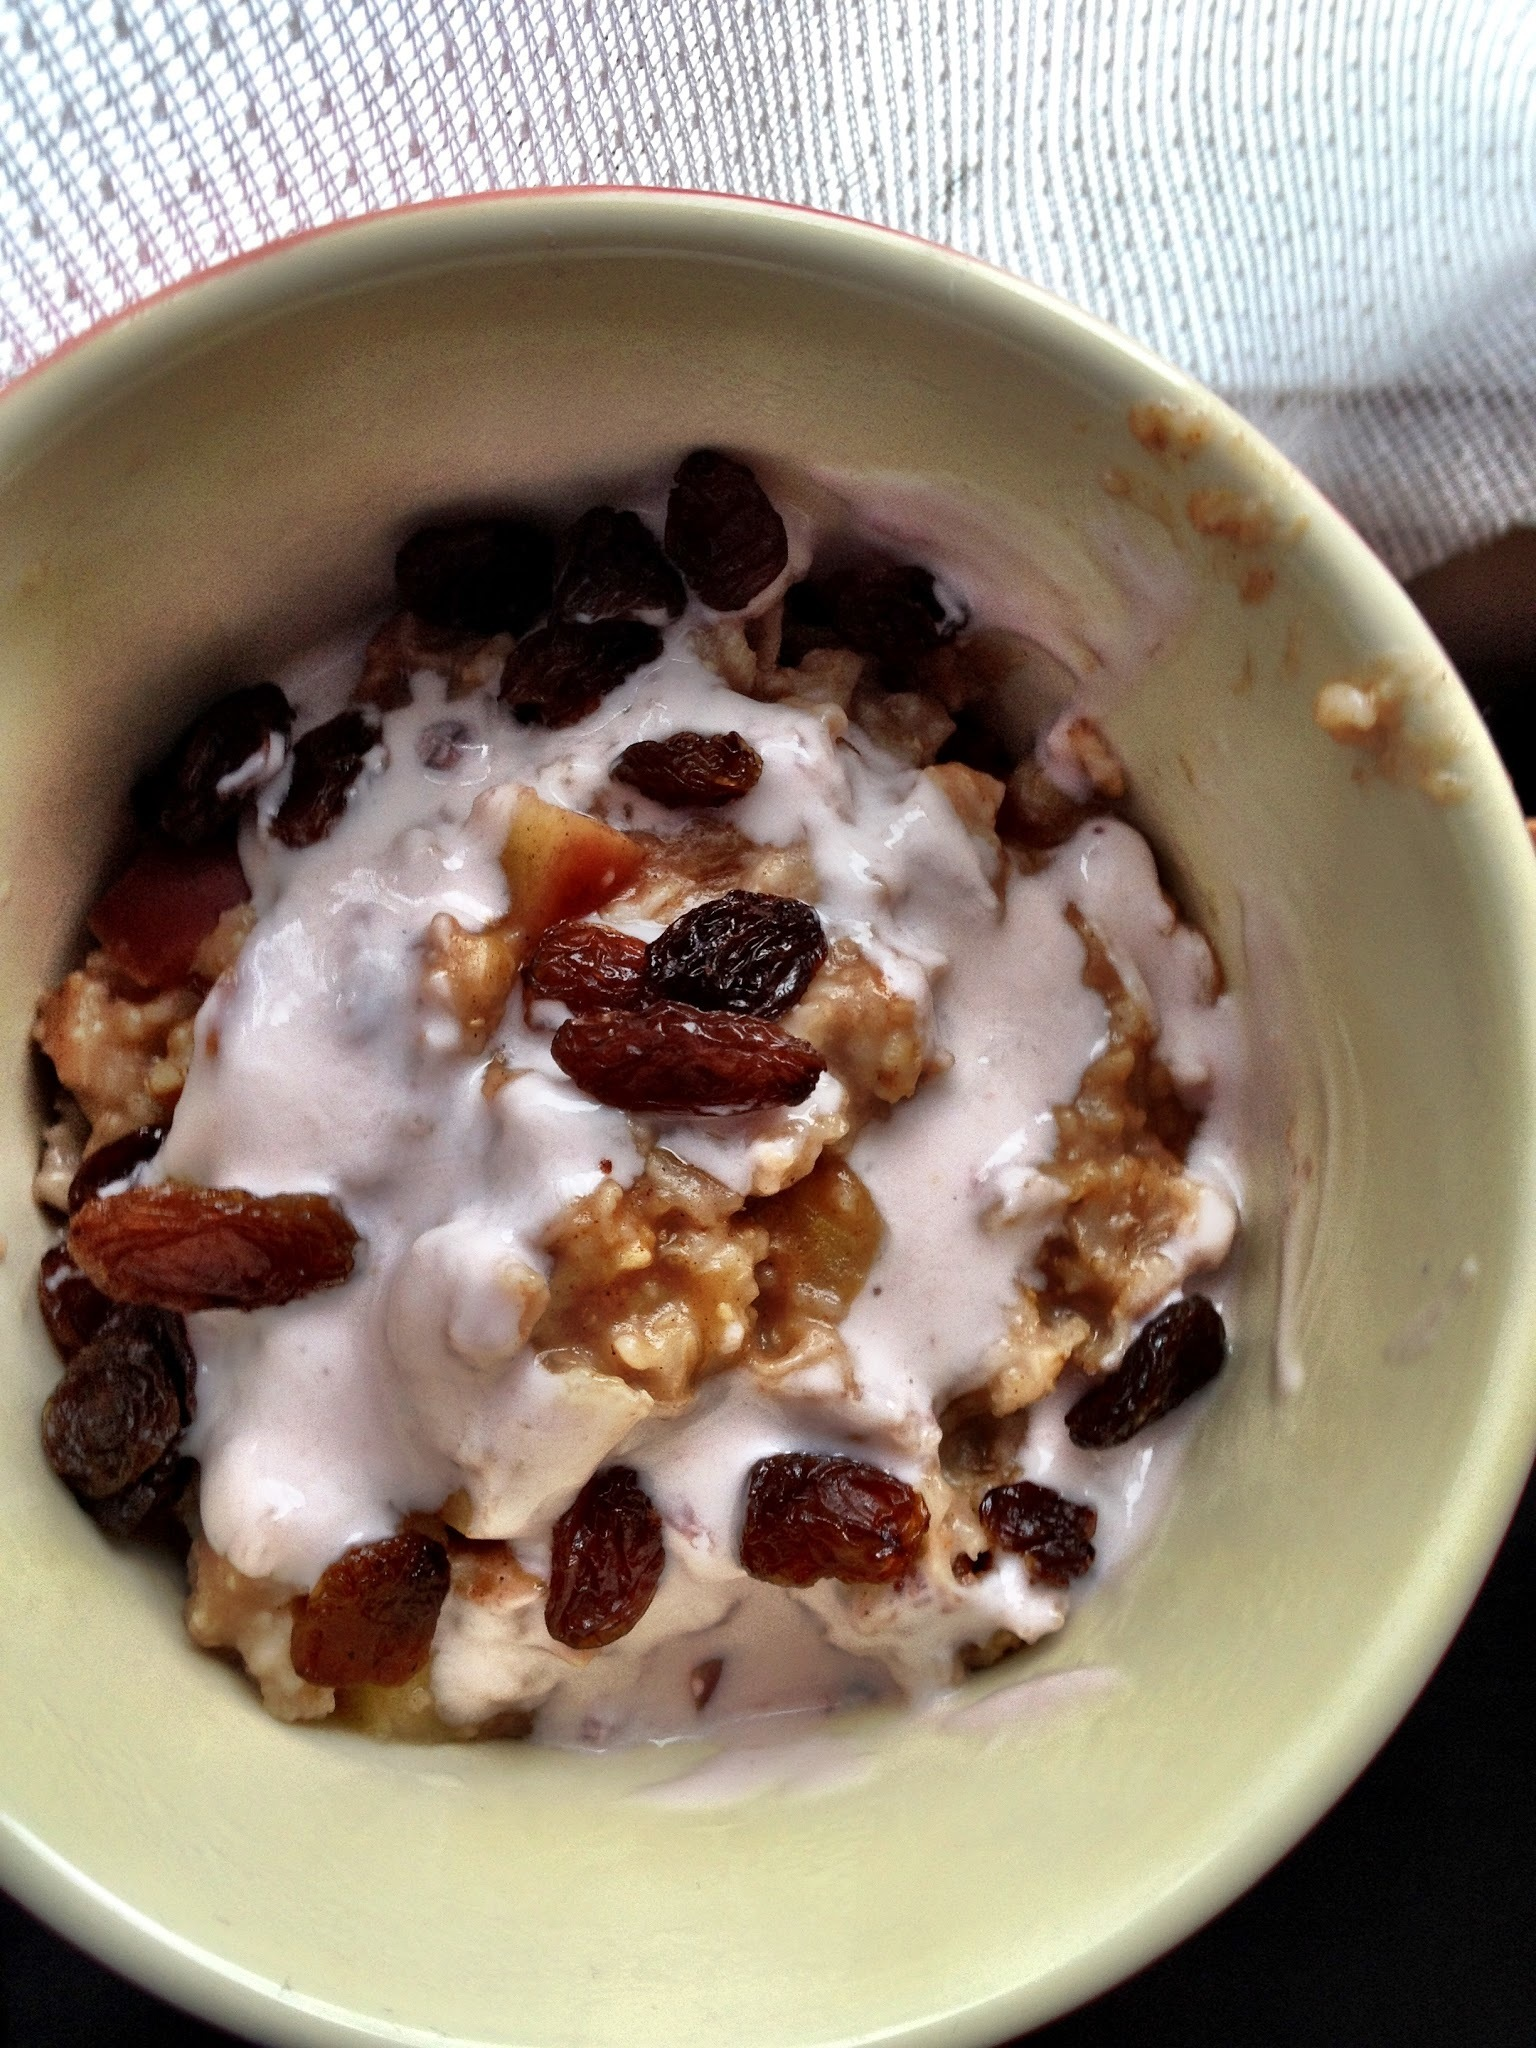 Christmas Breakfast Idea- Apple and Cranberry Rice Cooker Porridge